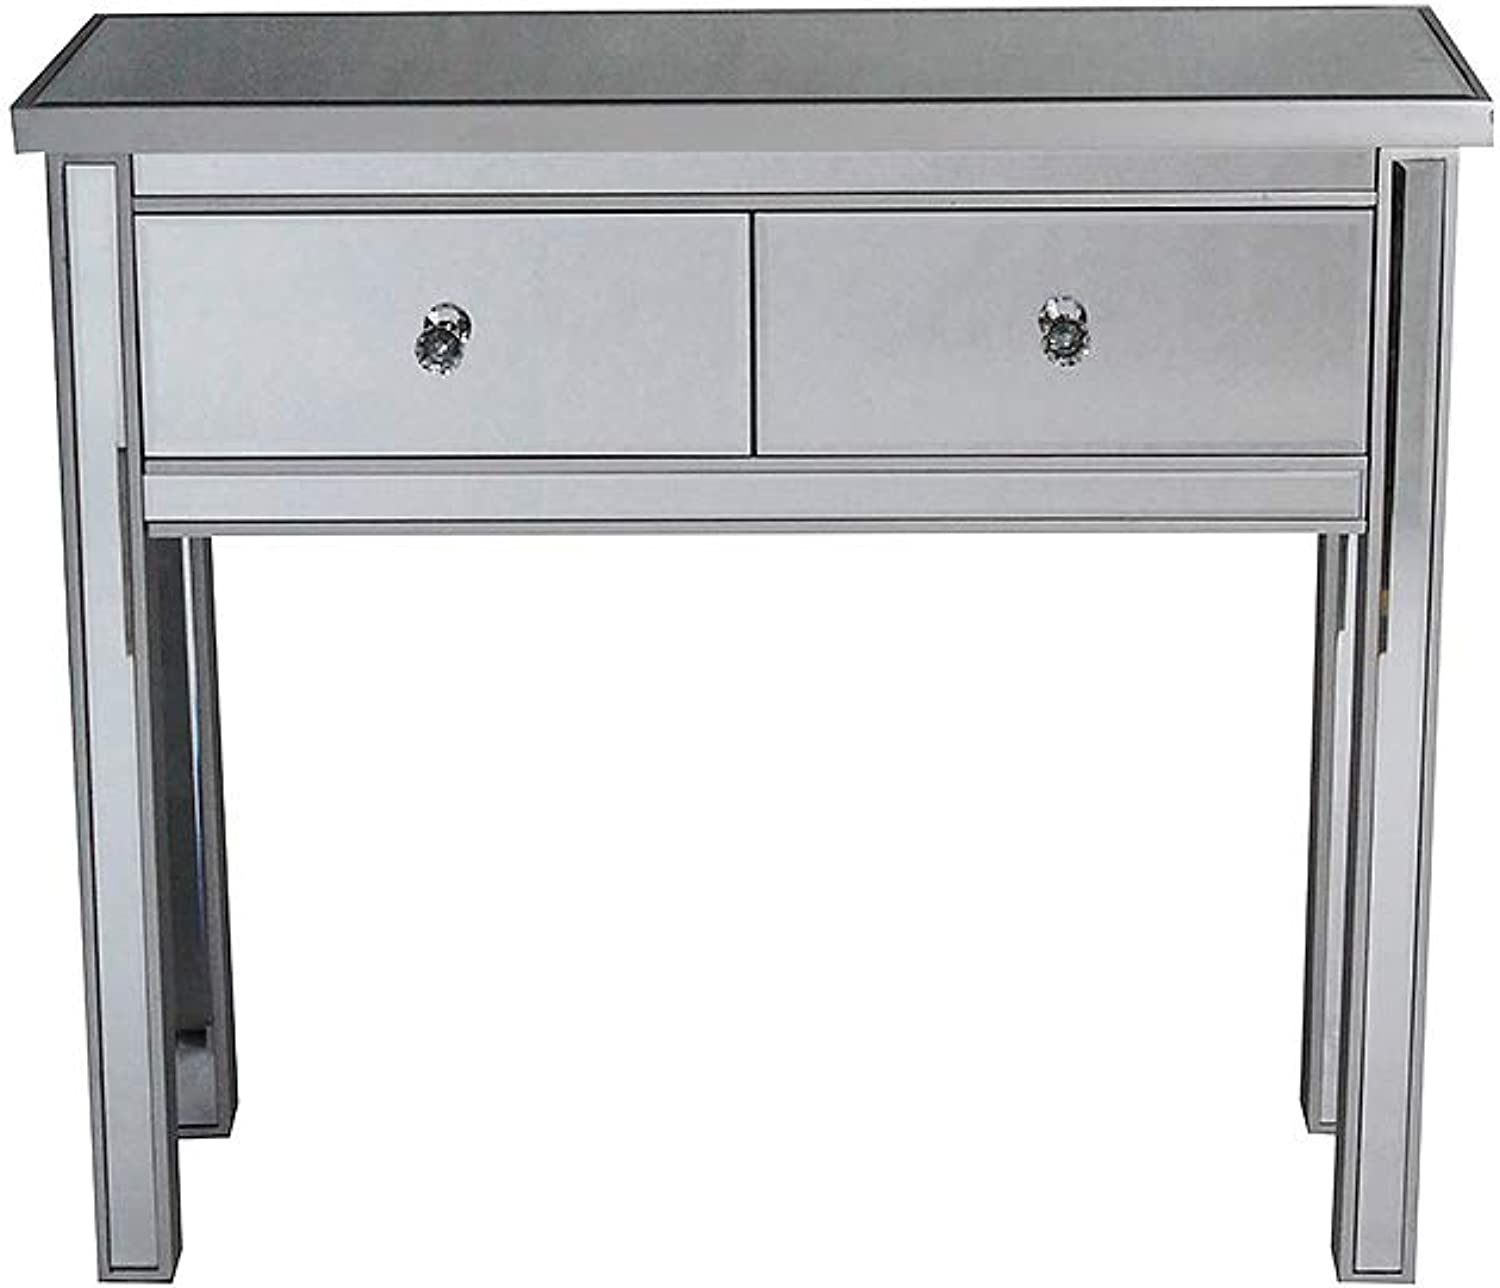 HomeRoots 2-Drawer Mirrored Console Table - Silver